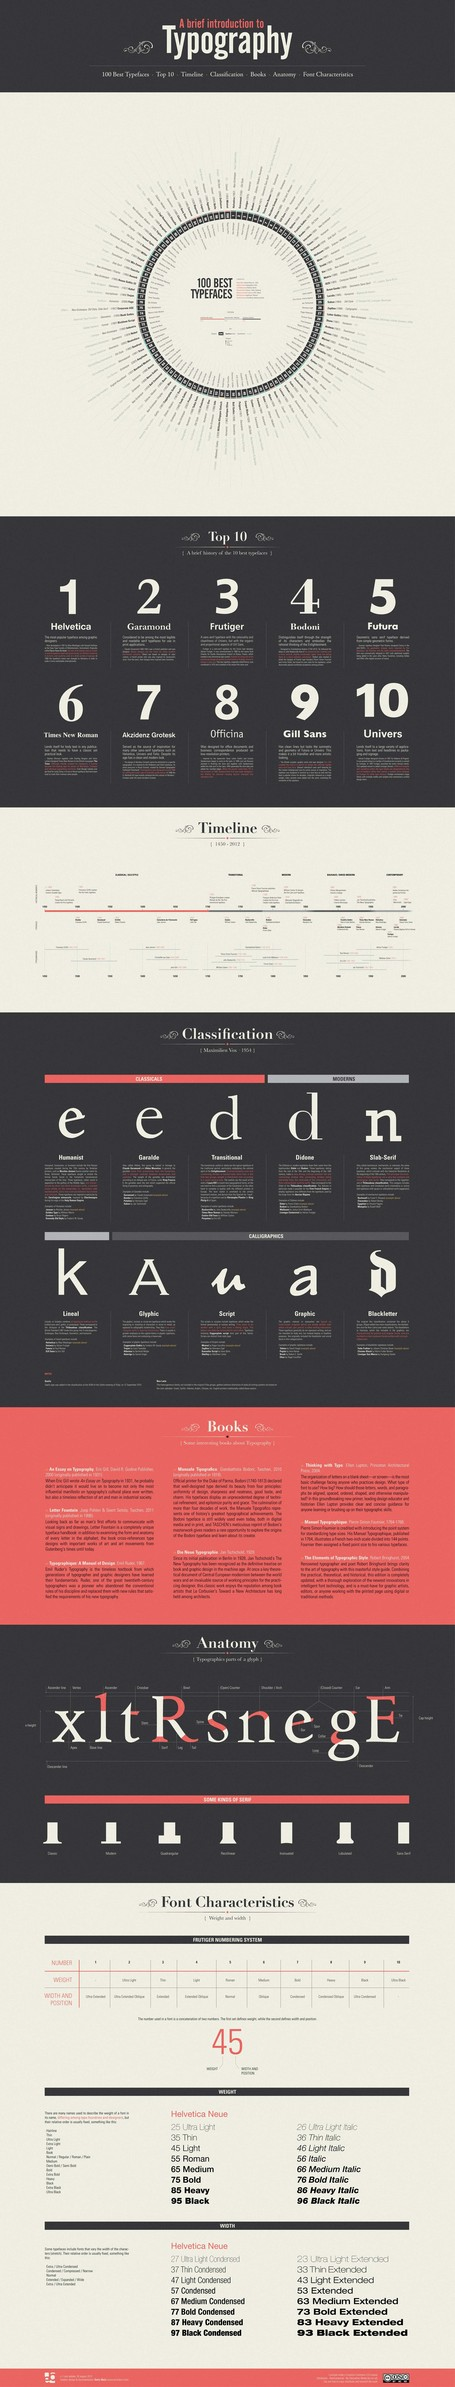 A Brief Introduction to Typography – Infographic | YUTech News | Scoop.it